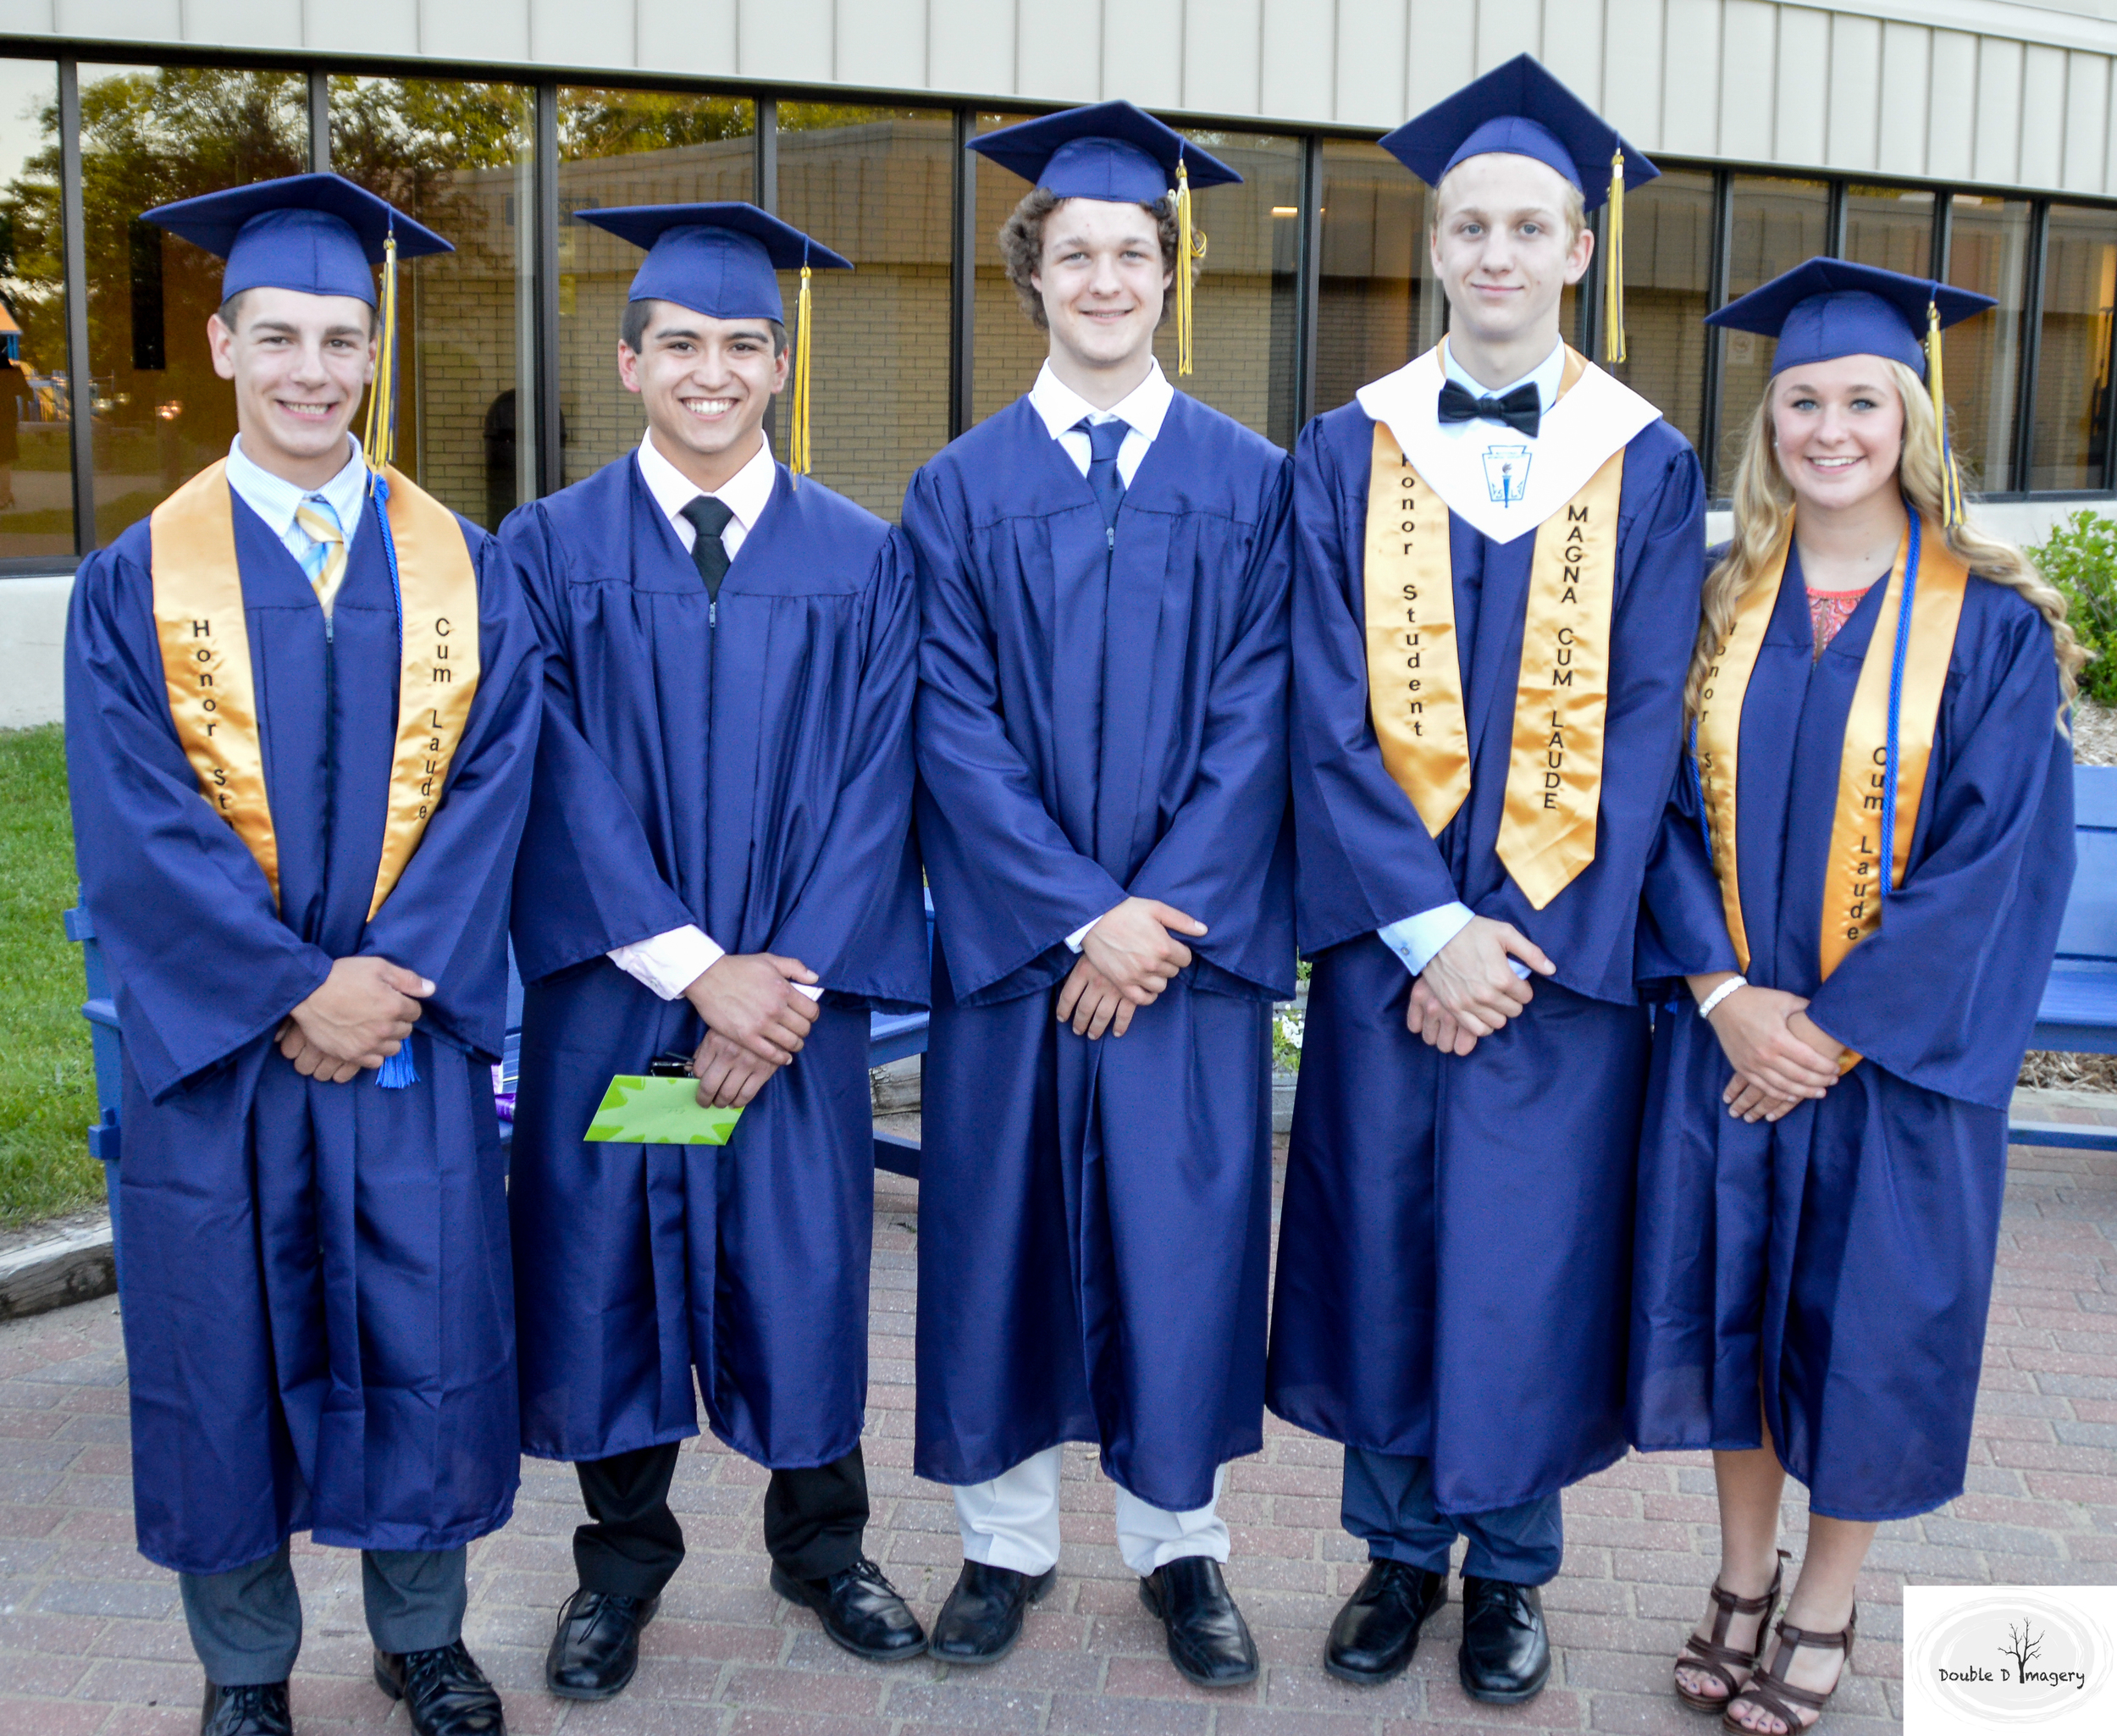 2016 Qualified Northport Promise Scholarship Graduates! left to right: marcus stowe, Eli cobb, hunter kellogg, caleb brown, morgan collins.Photo by Dan Duffiney